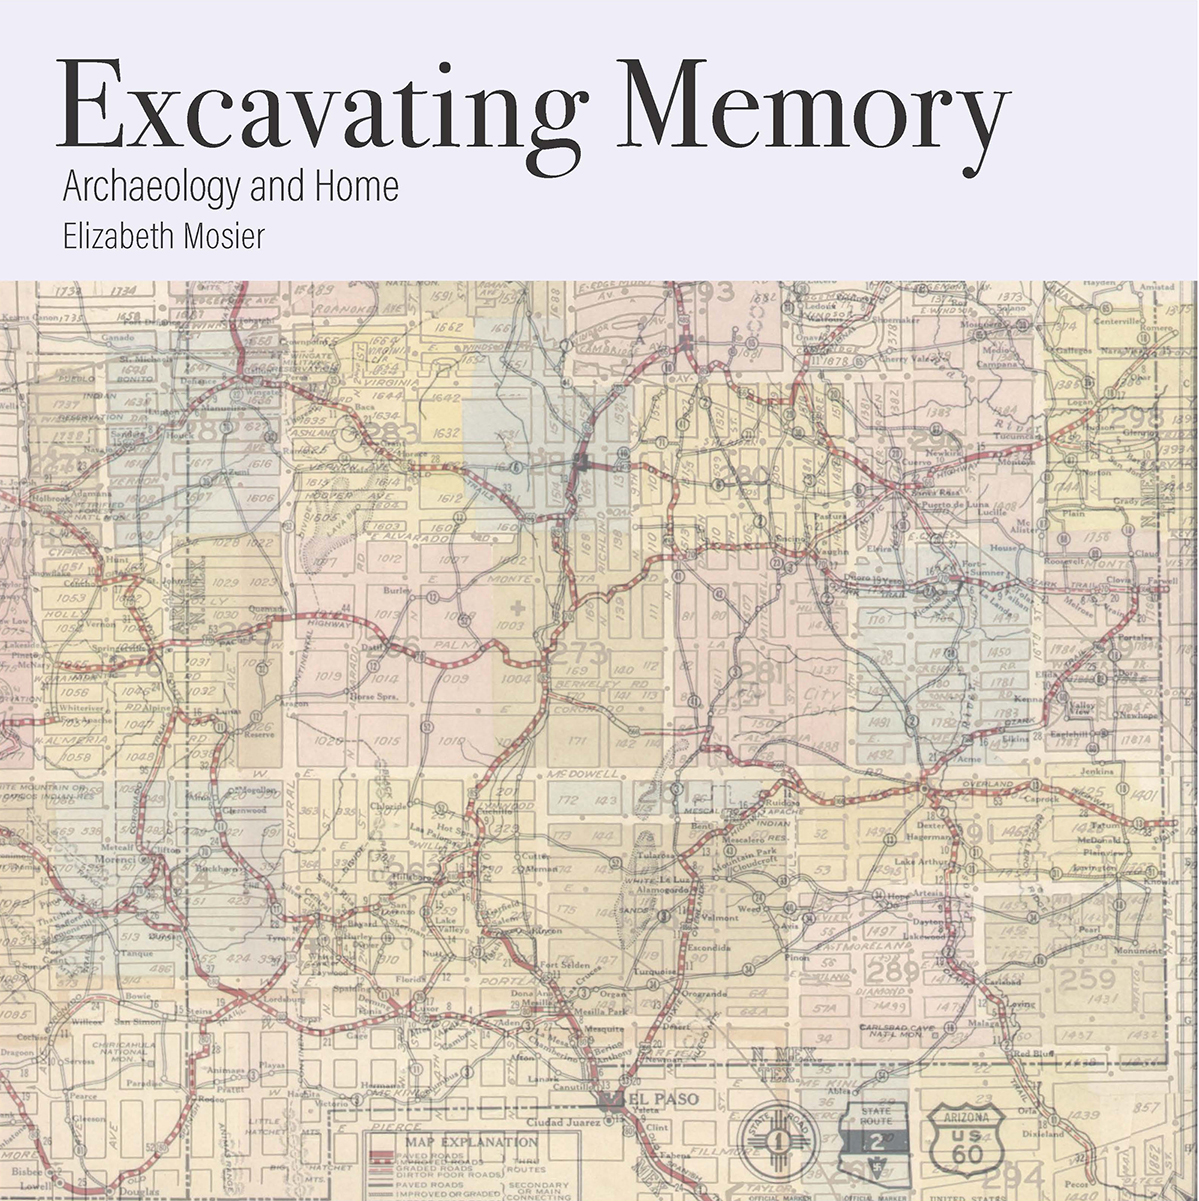 Excavating Memory: Archaeology and Home